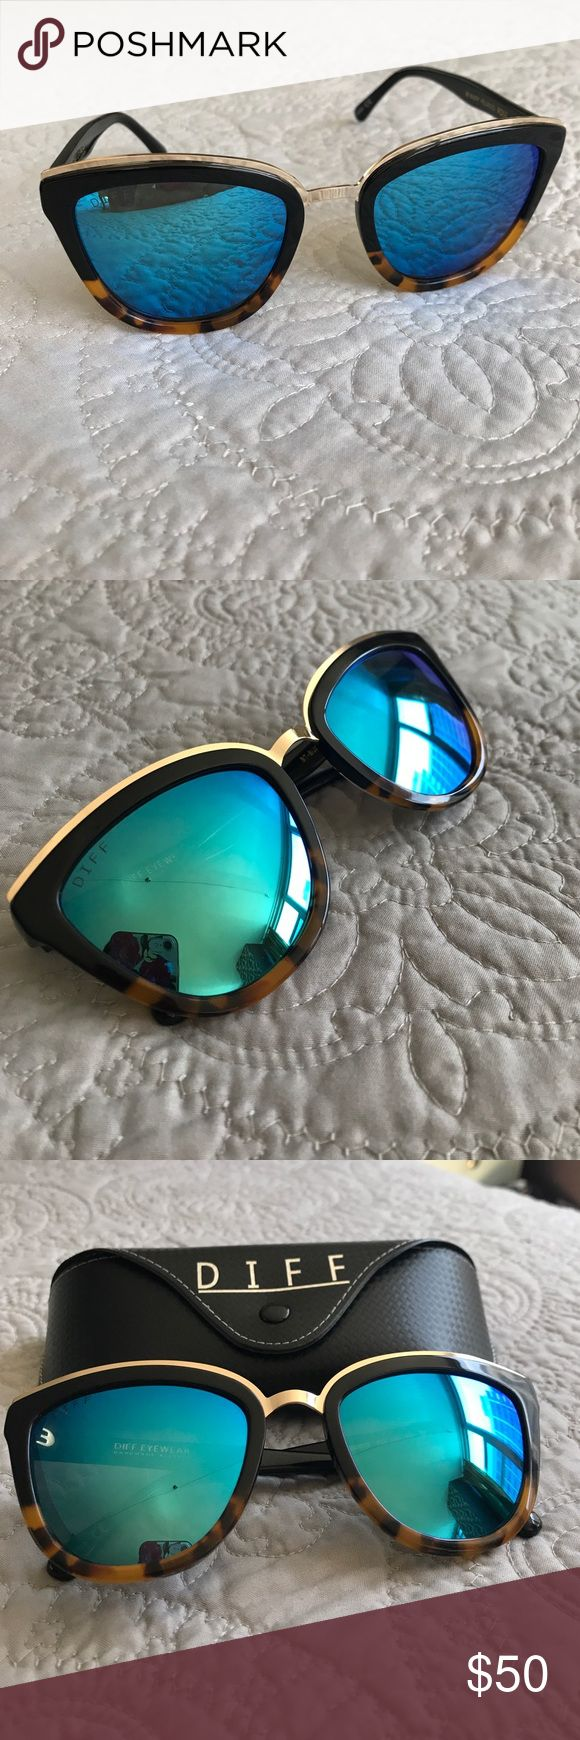 DIFF Eyewear Rose Polarized sunglasses The hottest brand of sunglasses, DIFF! Blue, polarized reflective Rose sunglasses. Black and tortoise frame with gold detail. These are SOLD OUT! Never worn, case included. Cheapest DIFF glasses on Poshmark -Hurry, they won't last!!! Diff Eyewear Accessories Sunglasses